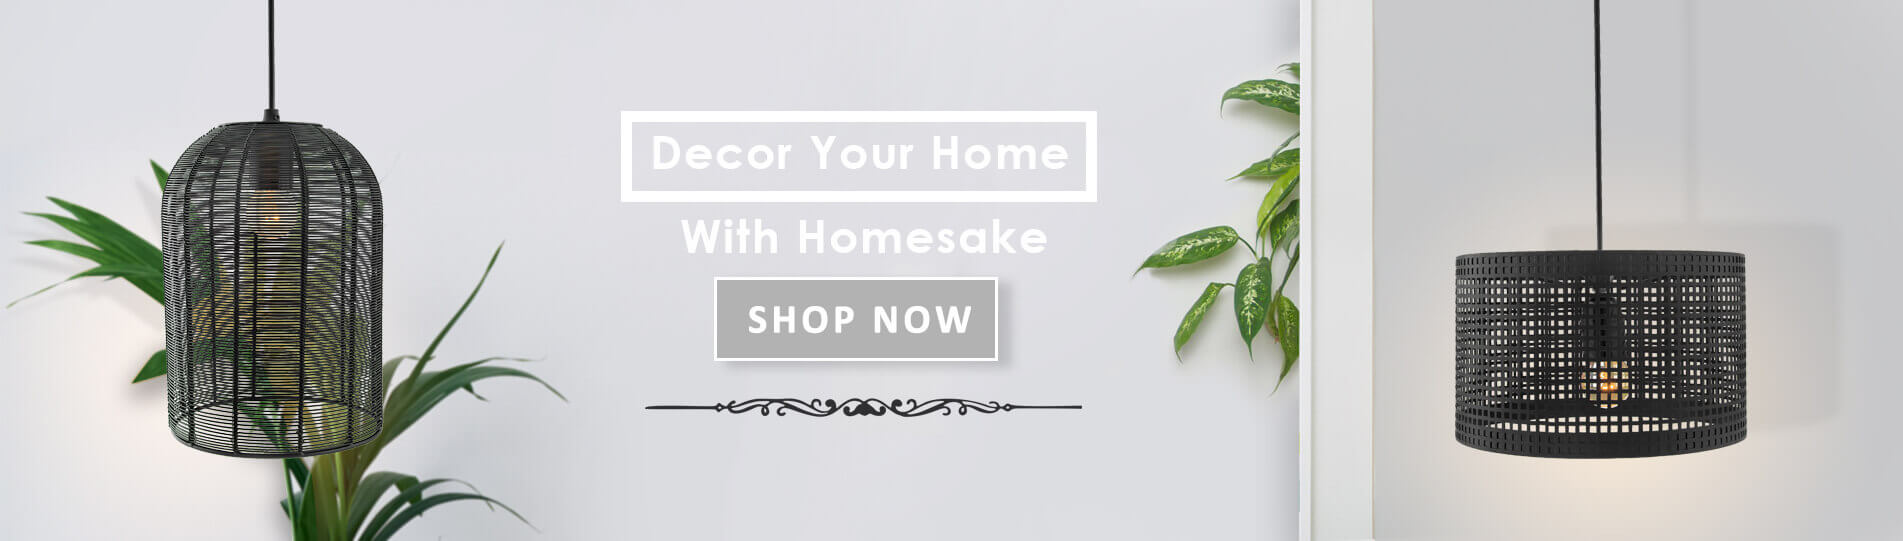 Decor your home with Homesake